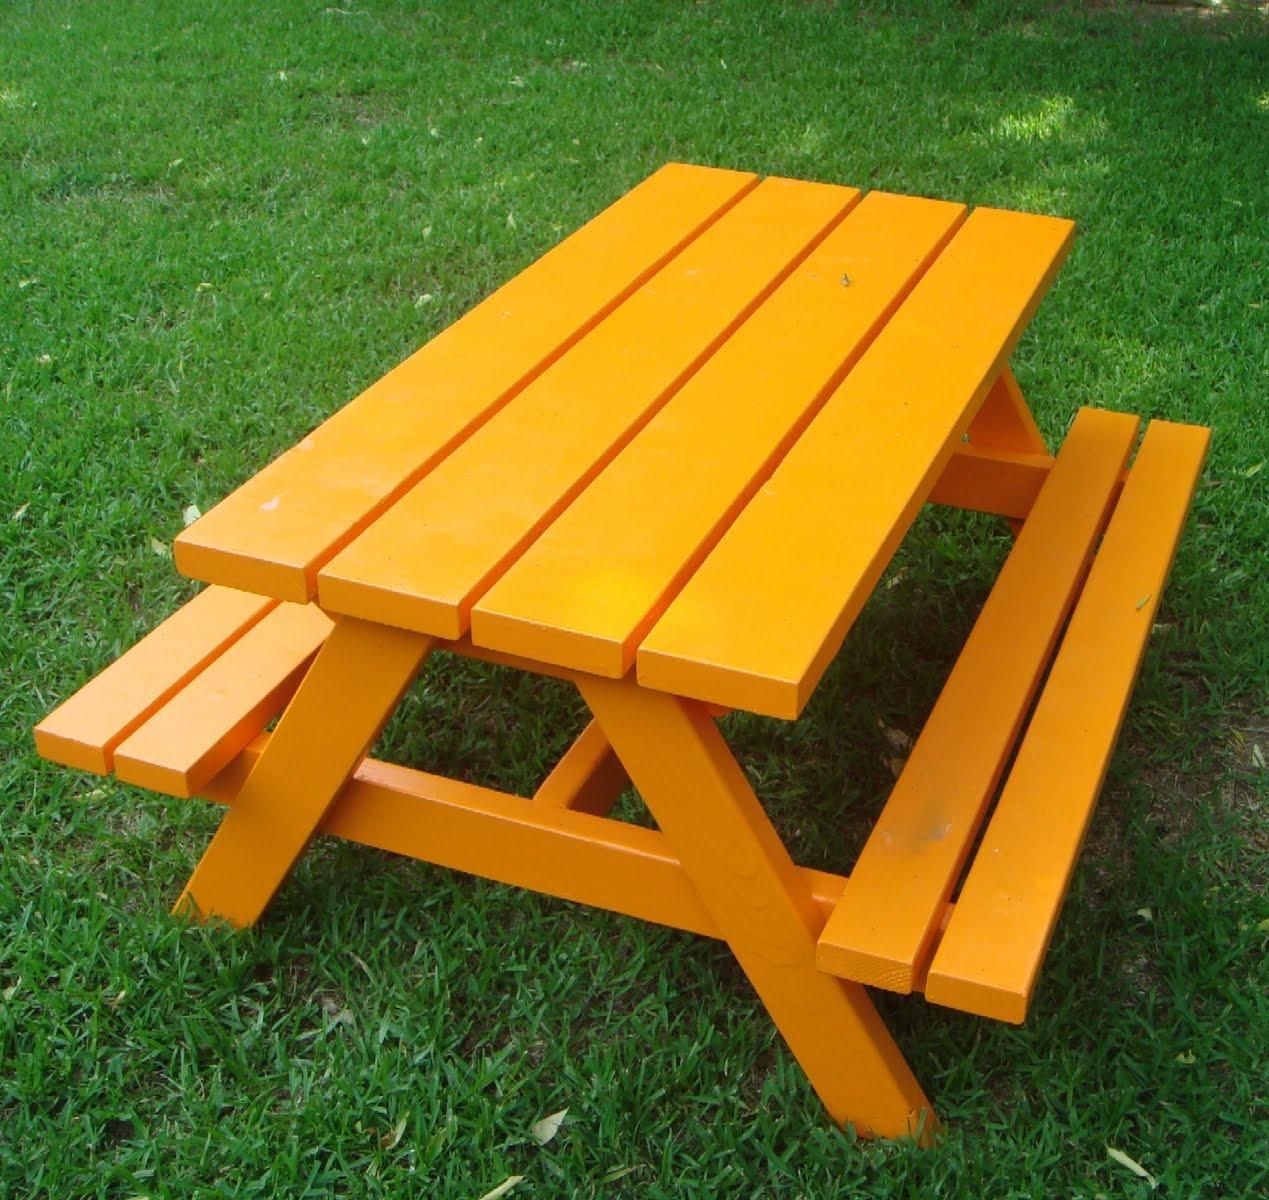 Ana White Build A Bigger Kids Picnic Table DIY Projects